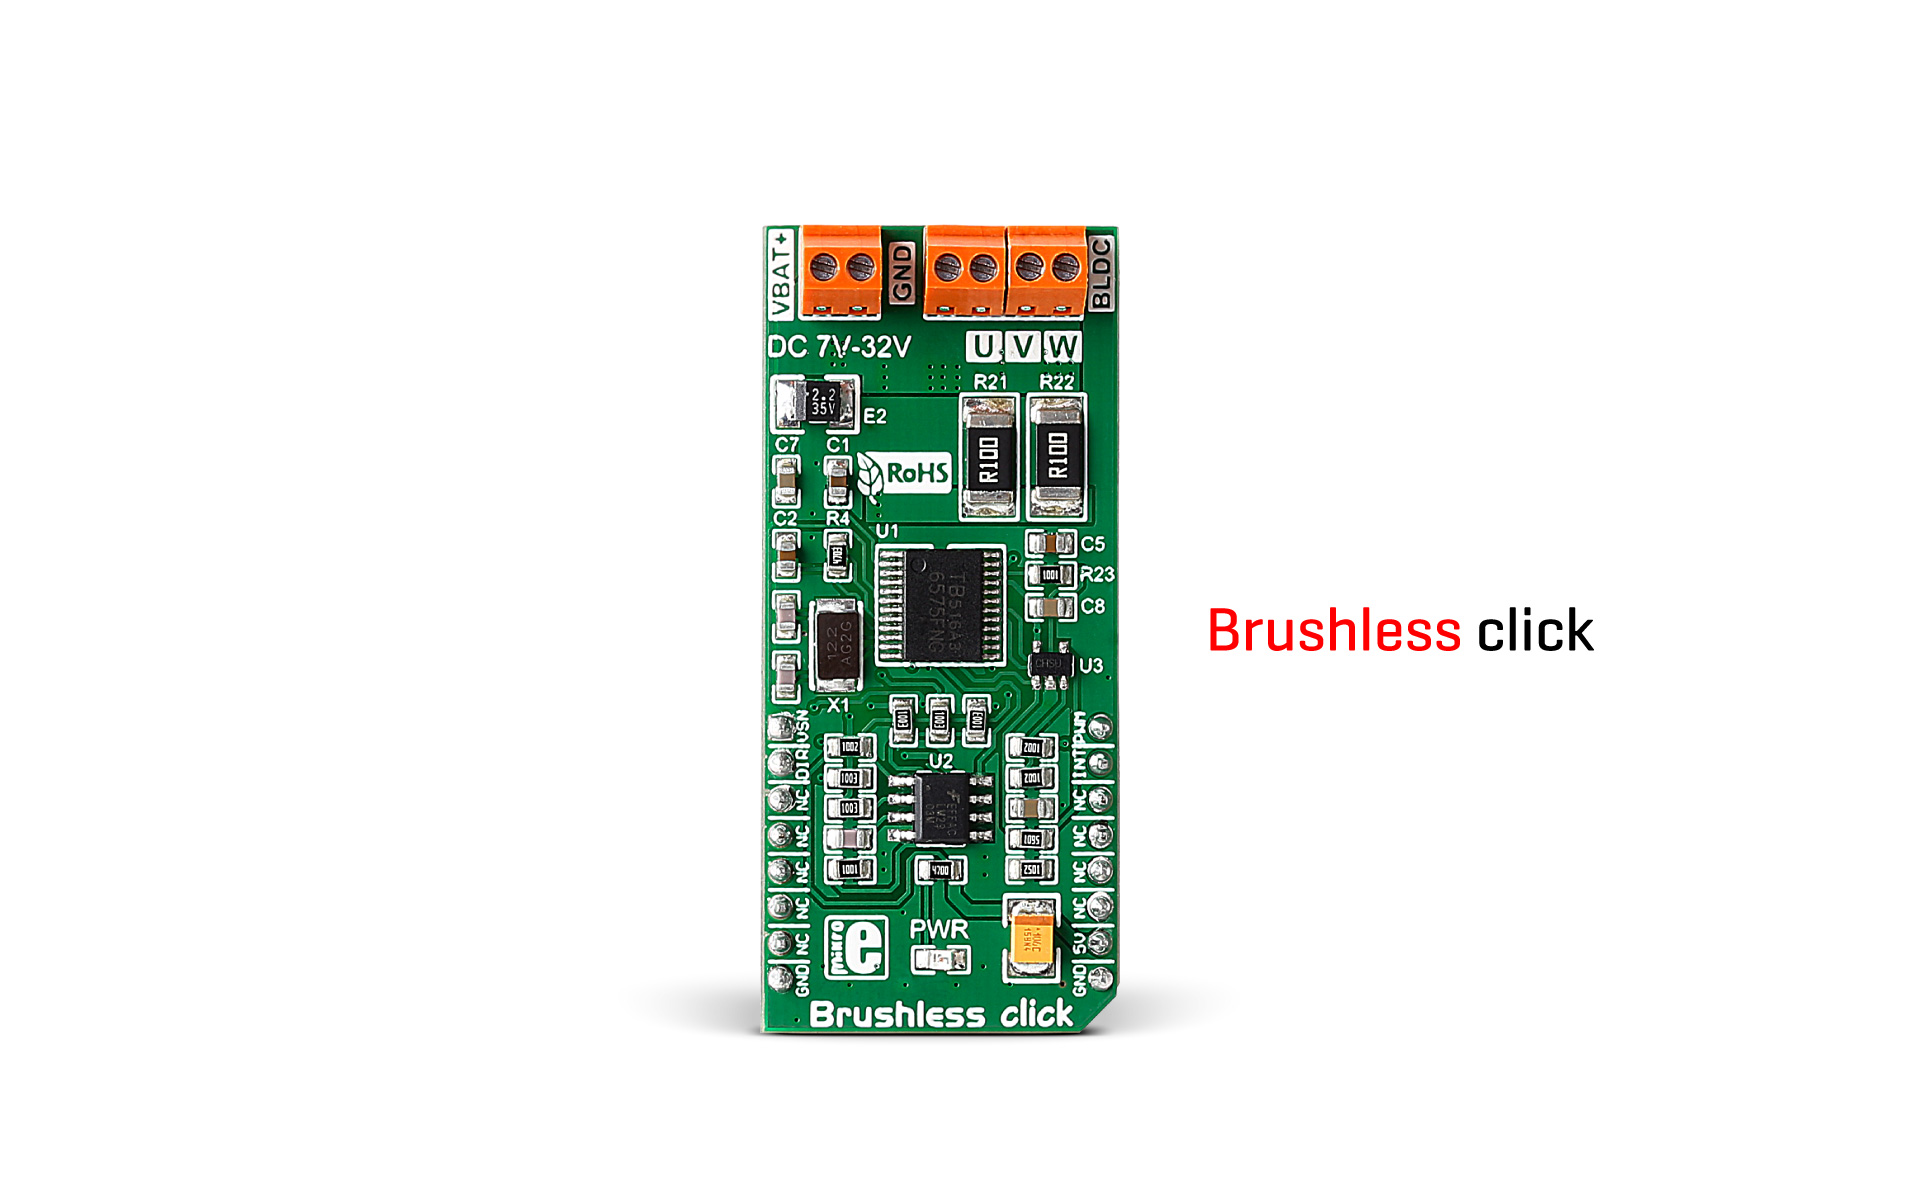 Brushless click released